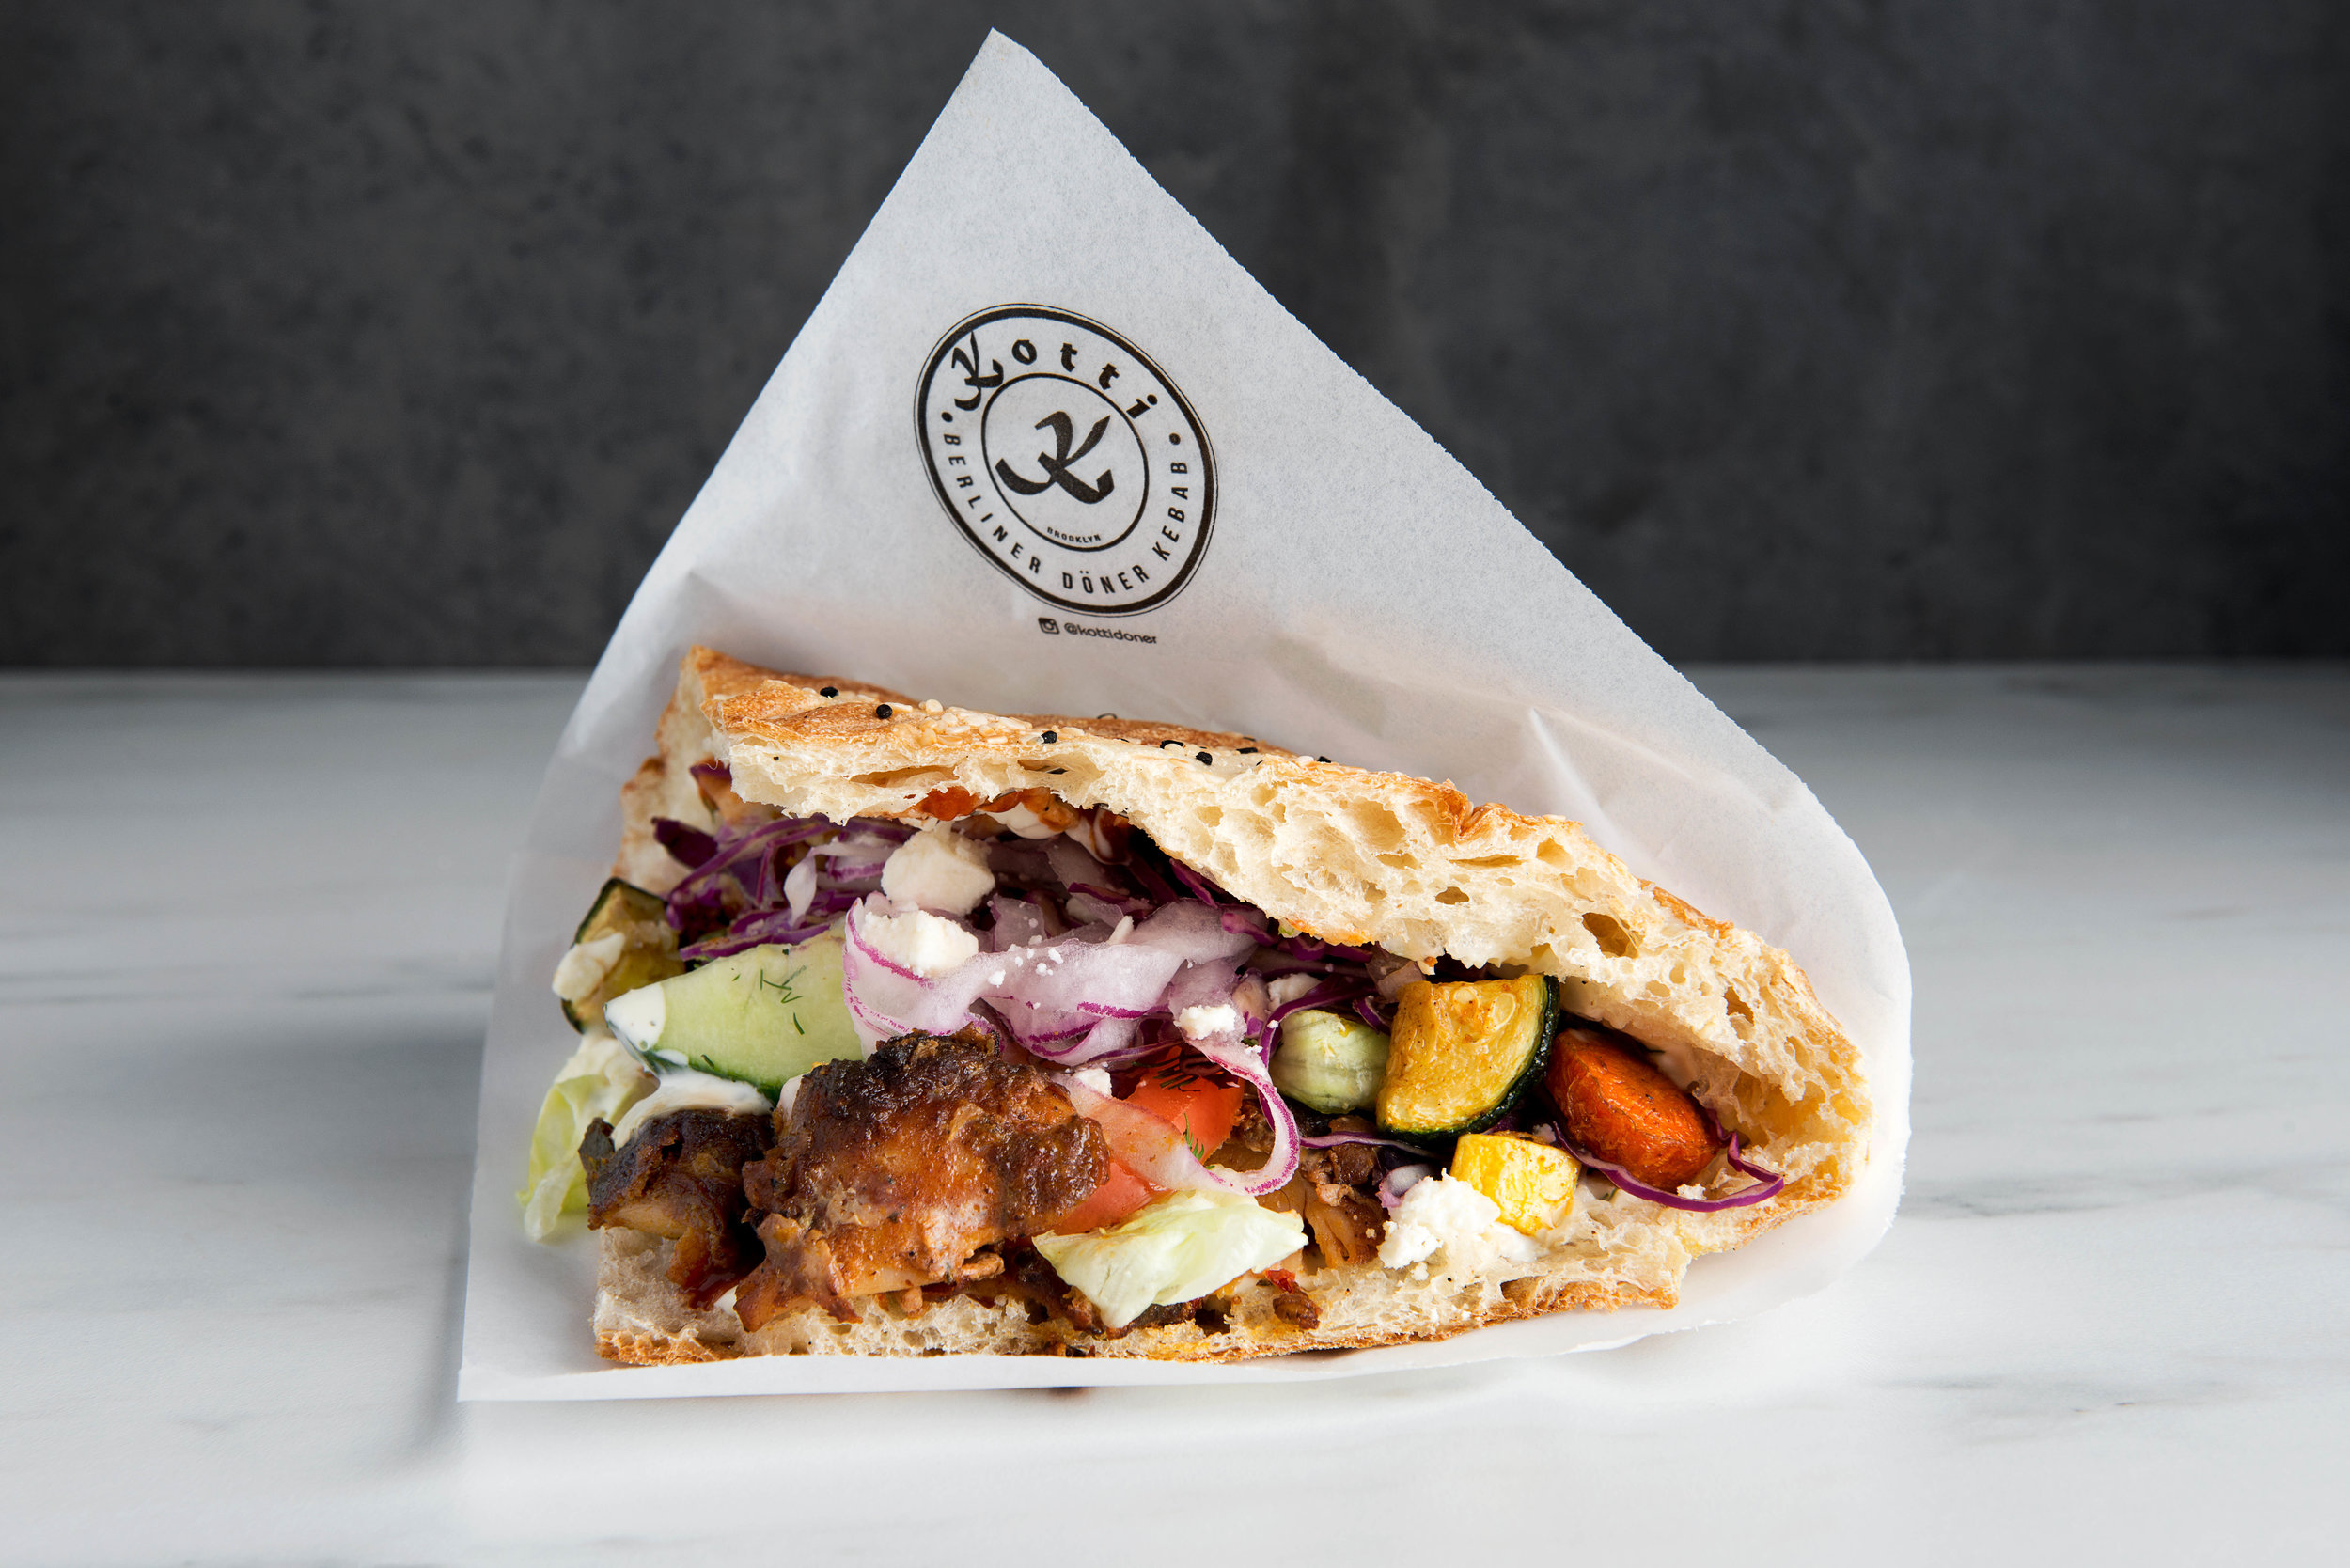 Berlin's doner, a sandwich you can't stop eating. This is a concept to watch.